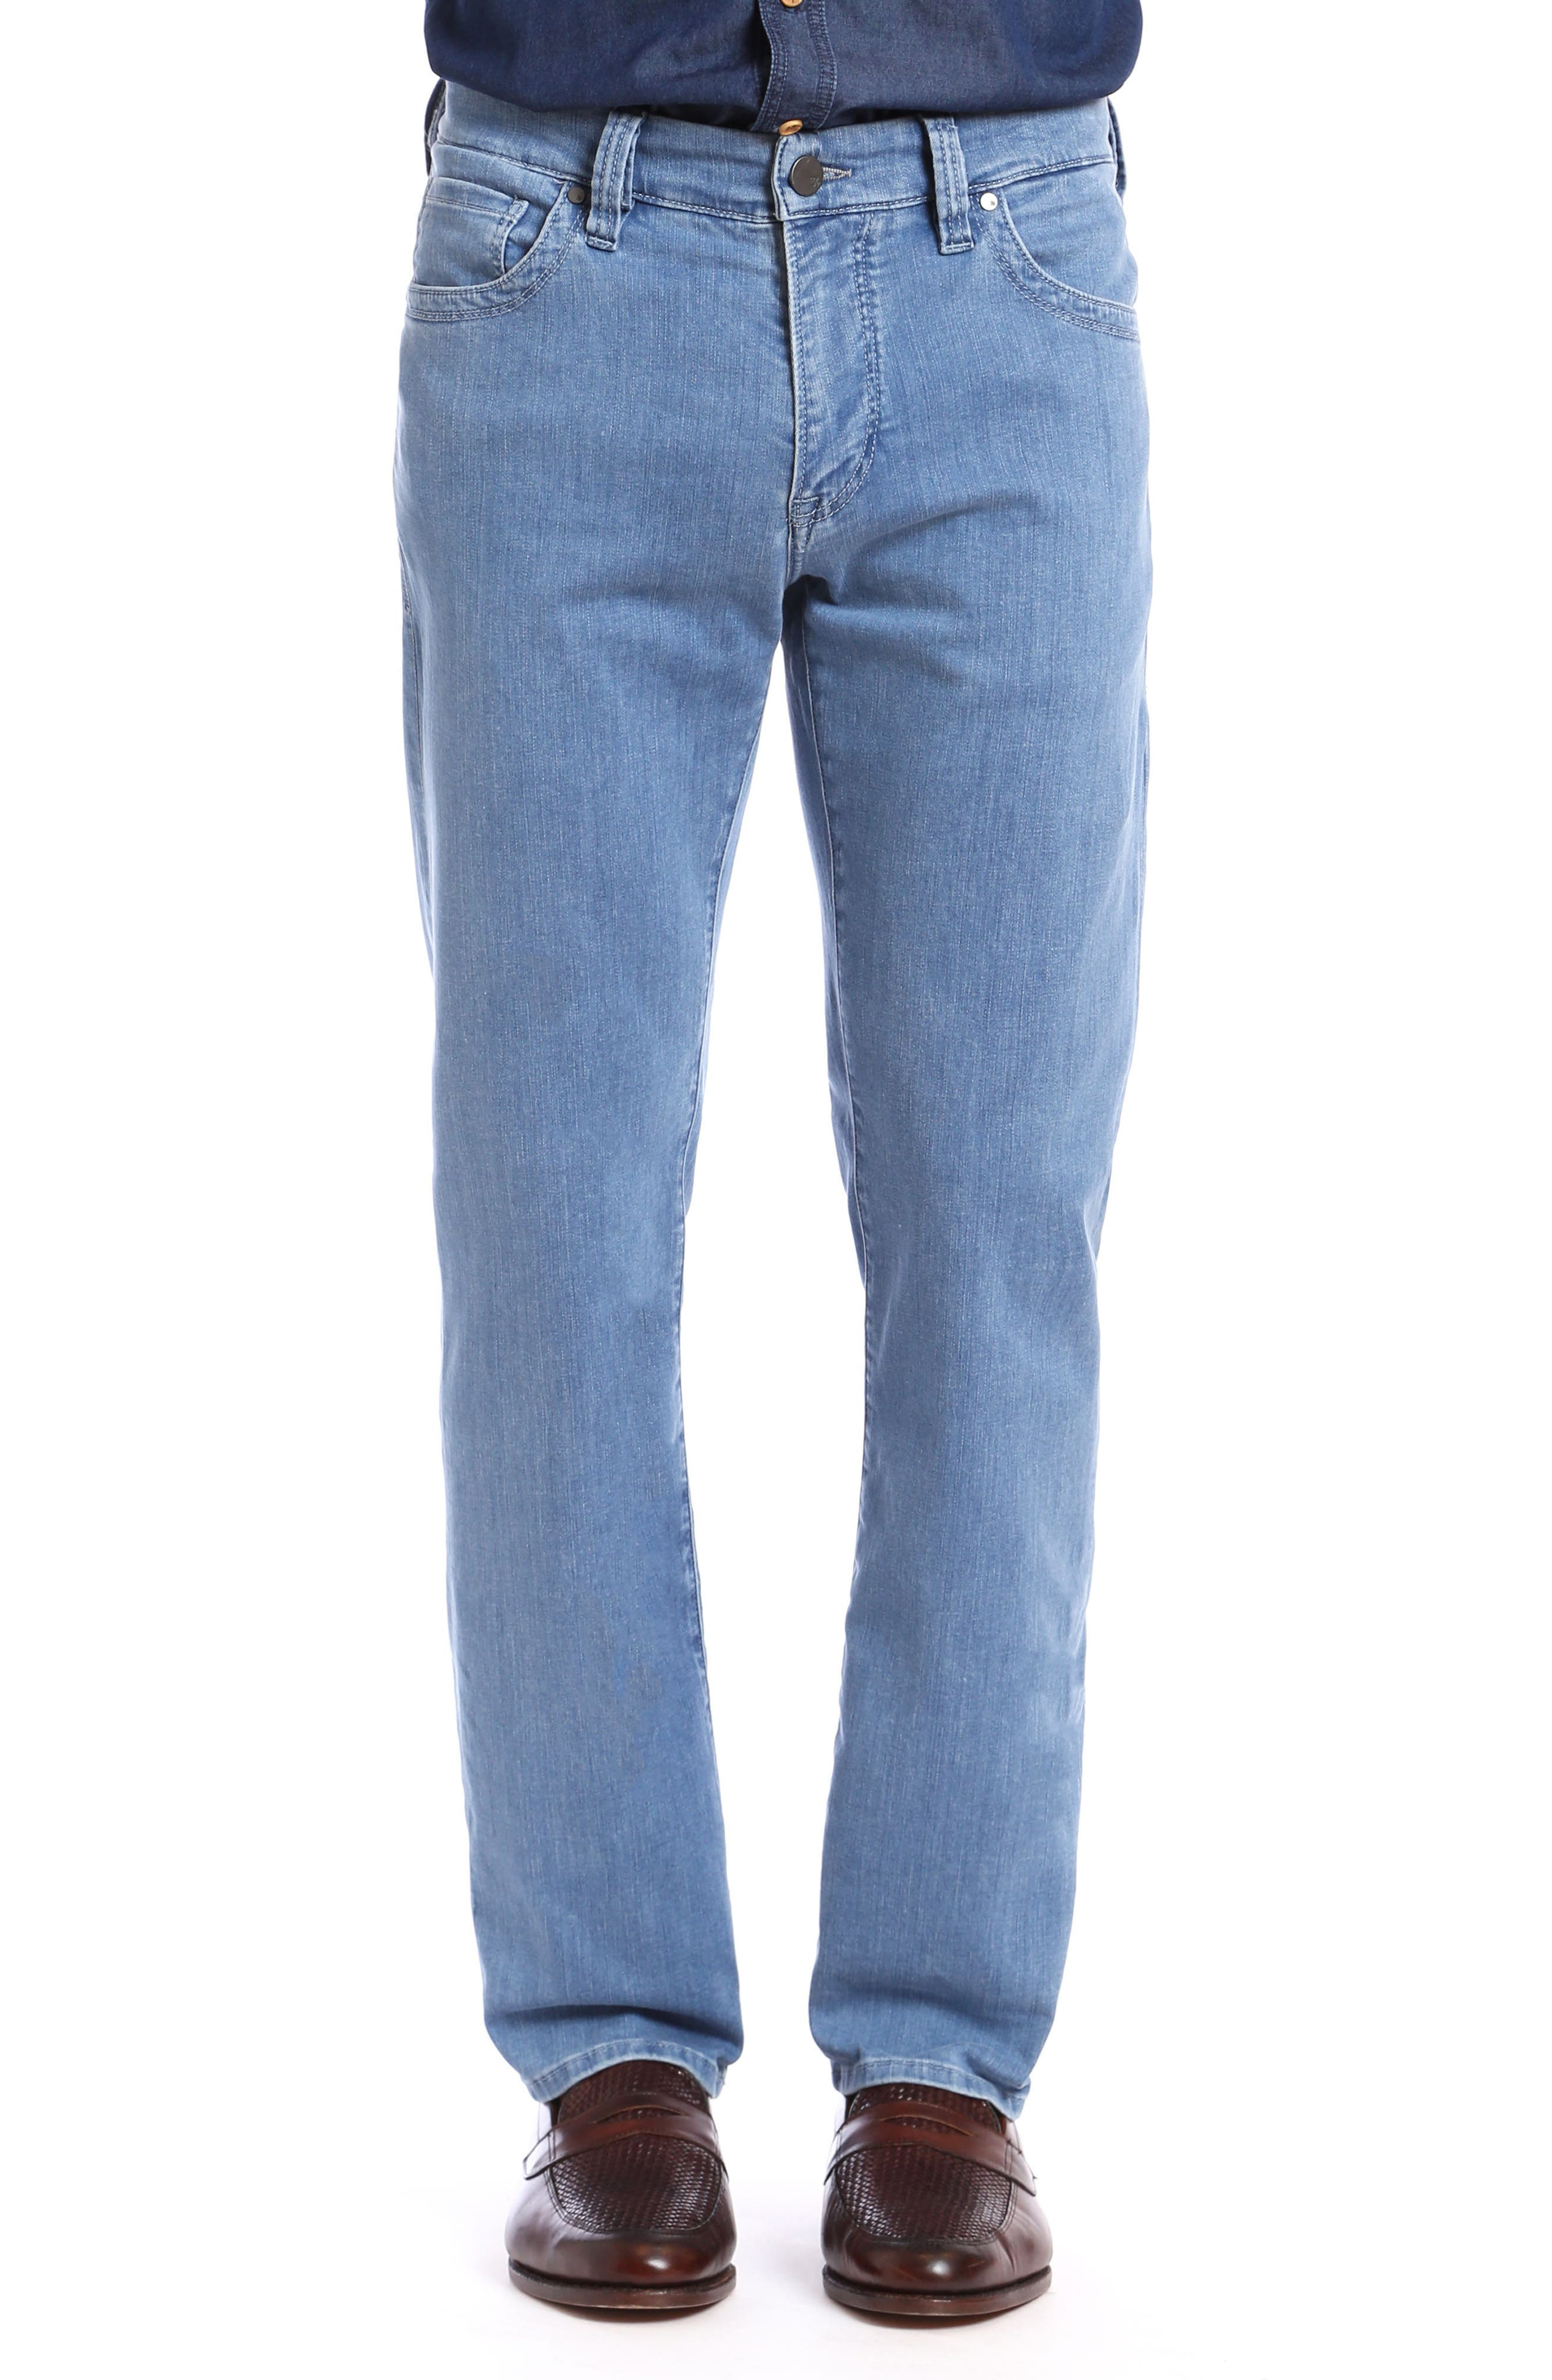 Charisma Relaxed Fit jeans,                         Main,                         color, Light Milan